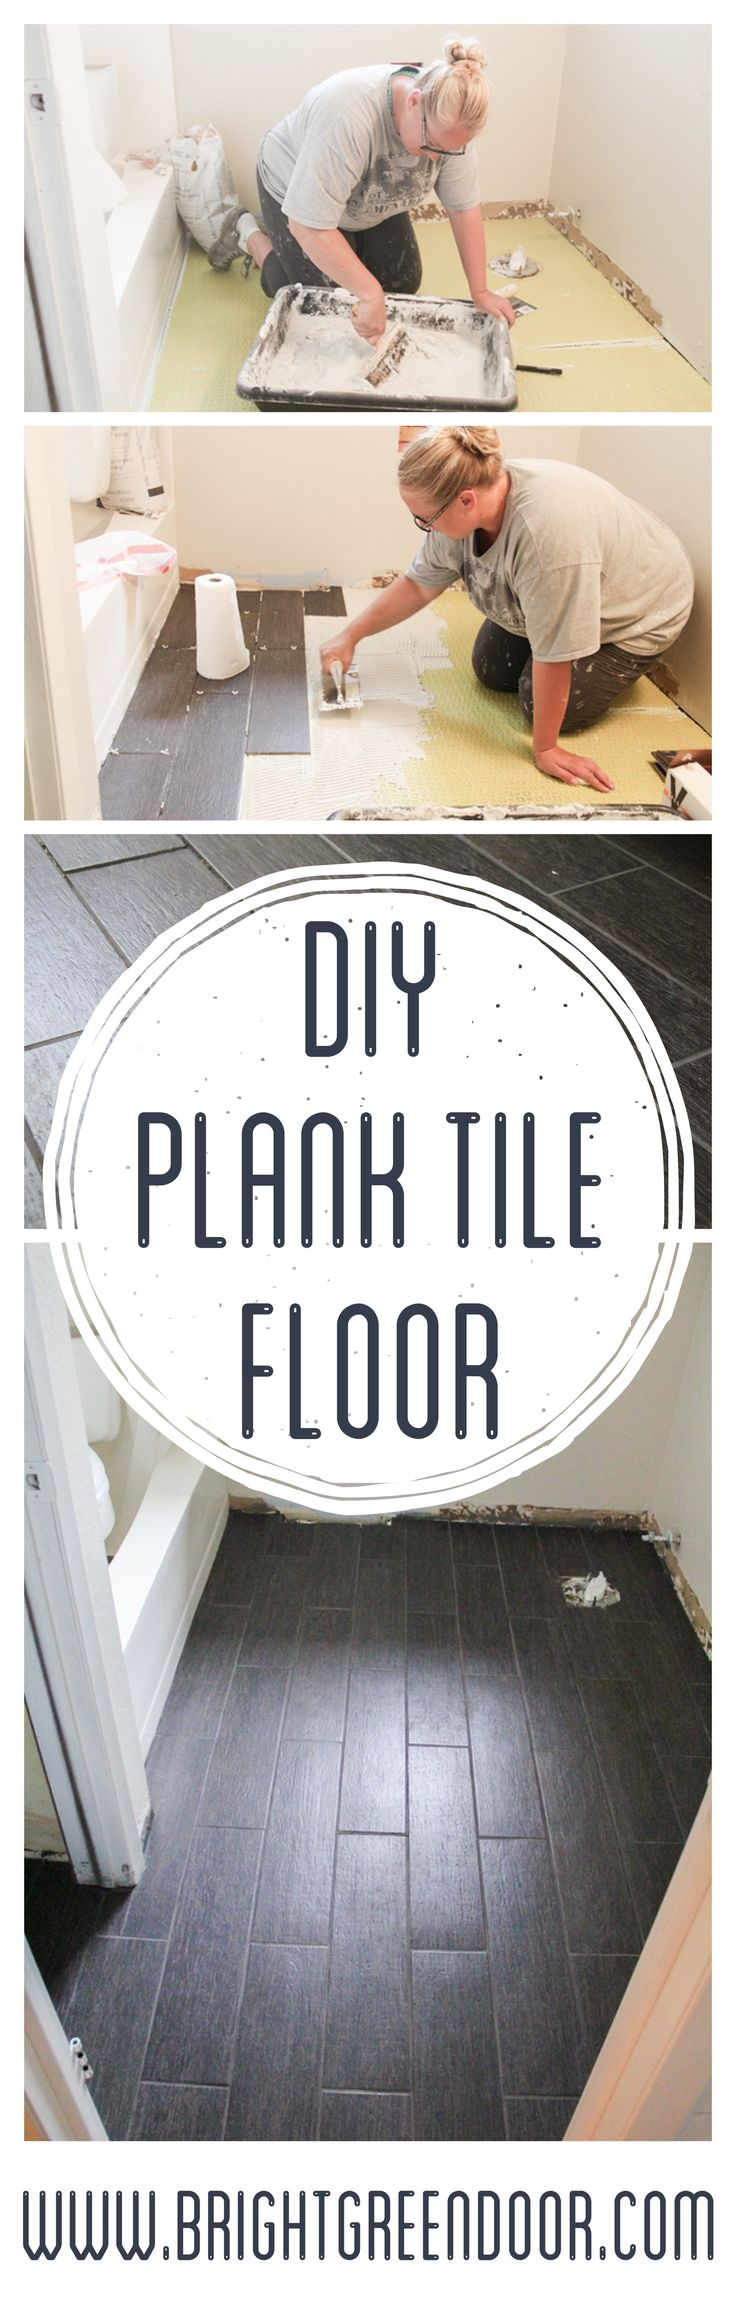 DIY Plank Tile Floor. How to lay Plank Tile. www.BrightGreenDoor.com